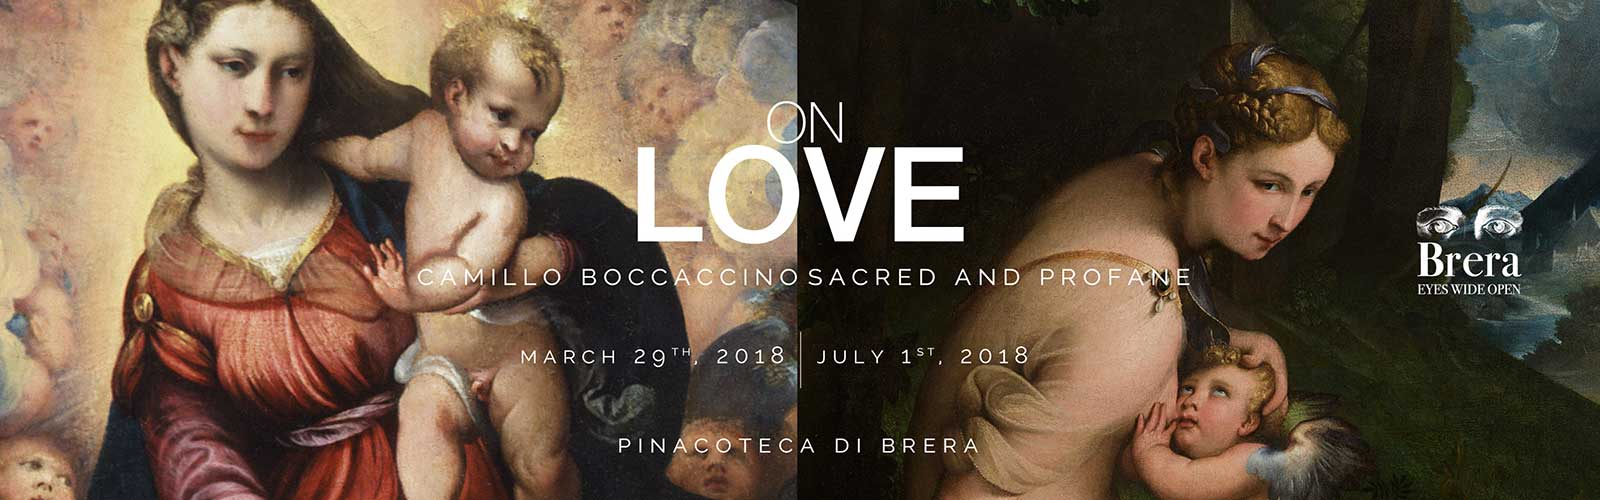 "Sixth dialogue ""On Love. Camillo Boccaccino, Sacred and Profane"""